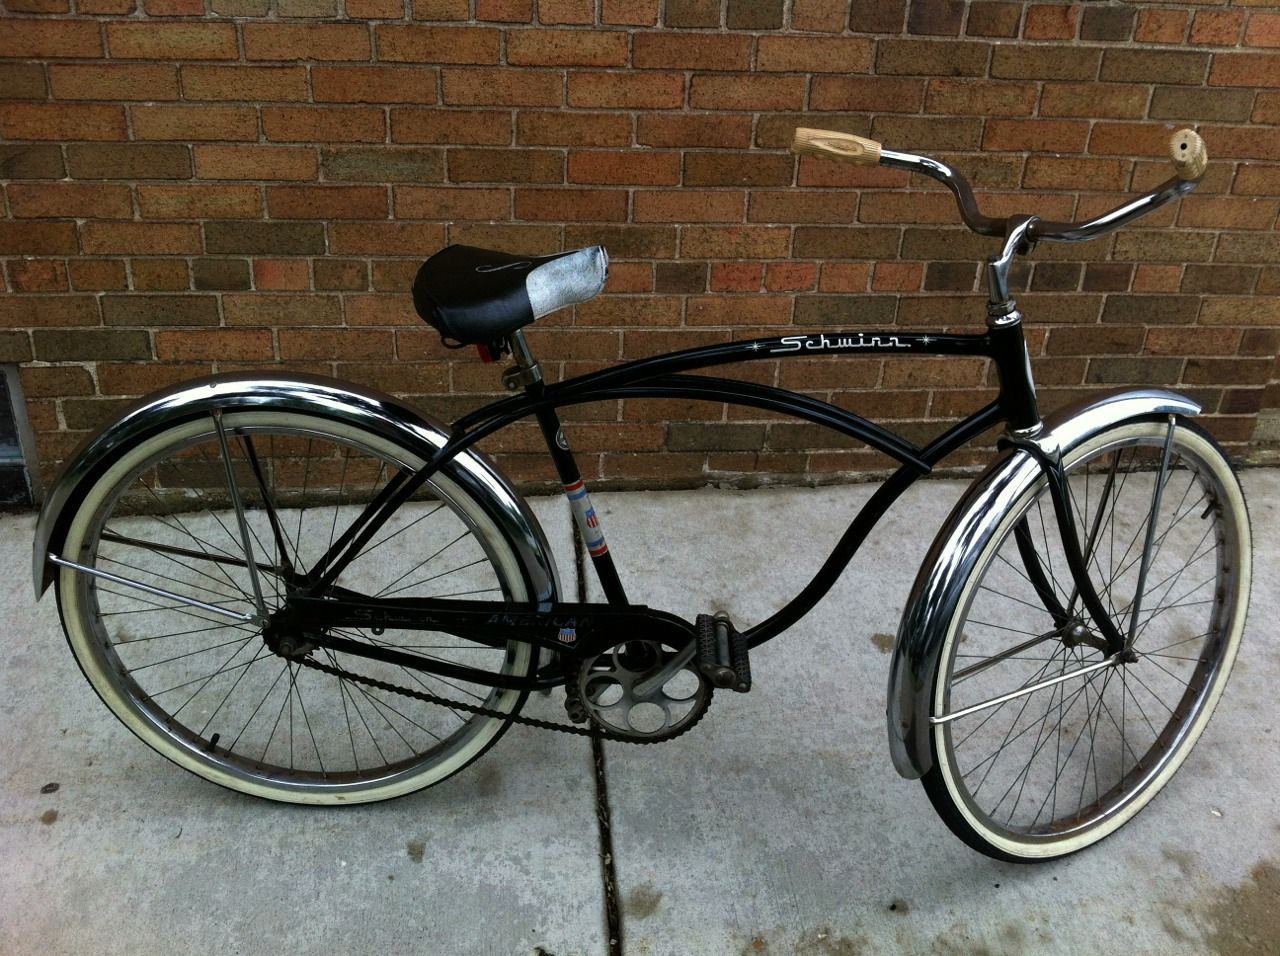 3f4fc231f1b Schwinn American, 1960's, in excellent condition. Chrome fenders, original  saddle, some pain fading and nicks, but looks great for its age.